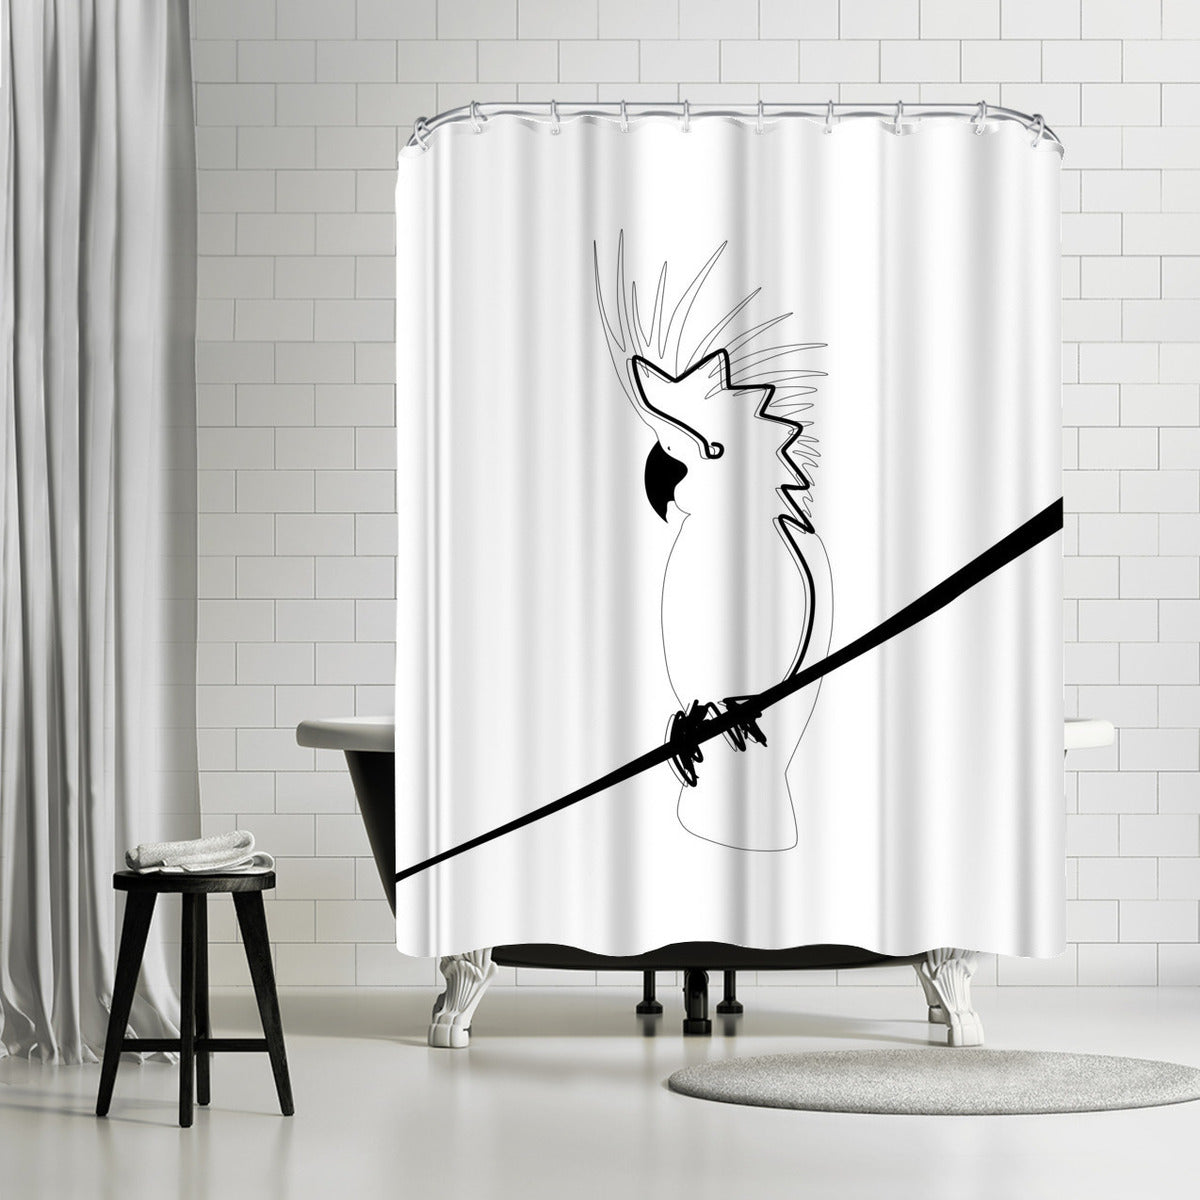 Cockatoo In Line by Explicit Design Shower Curtain -  - Americanflat